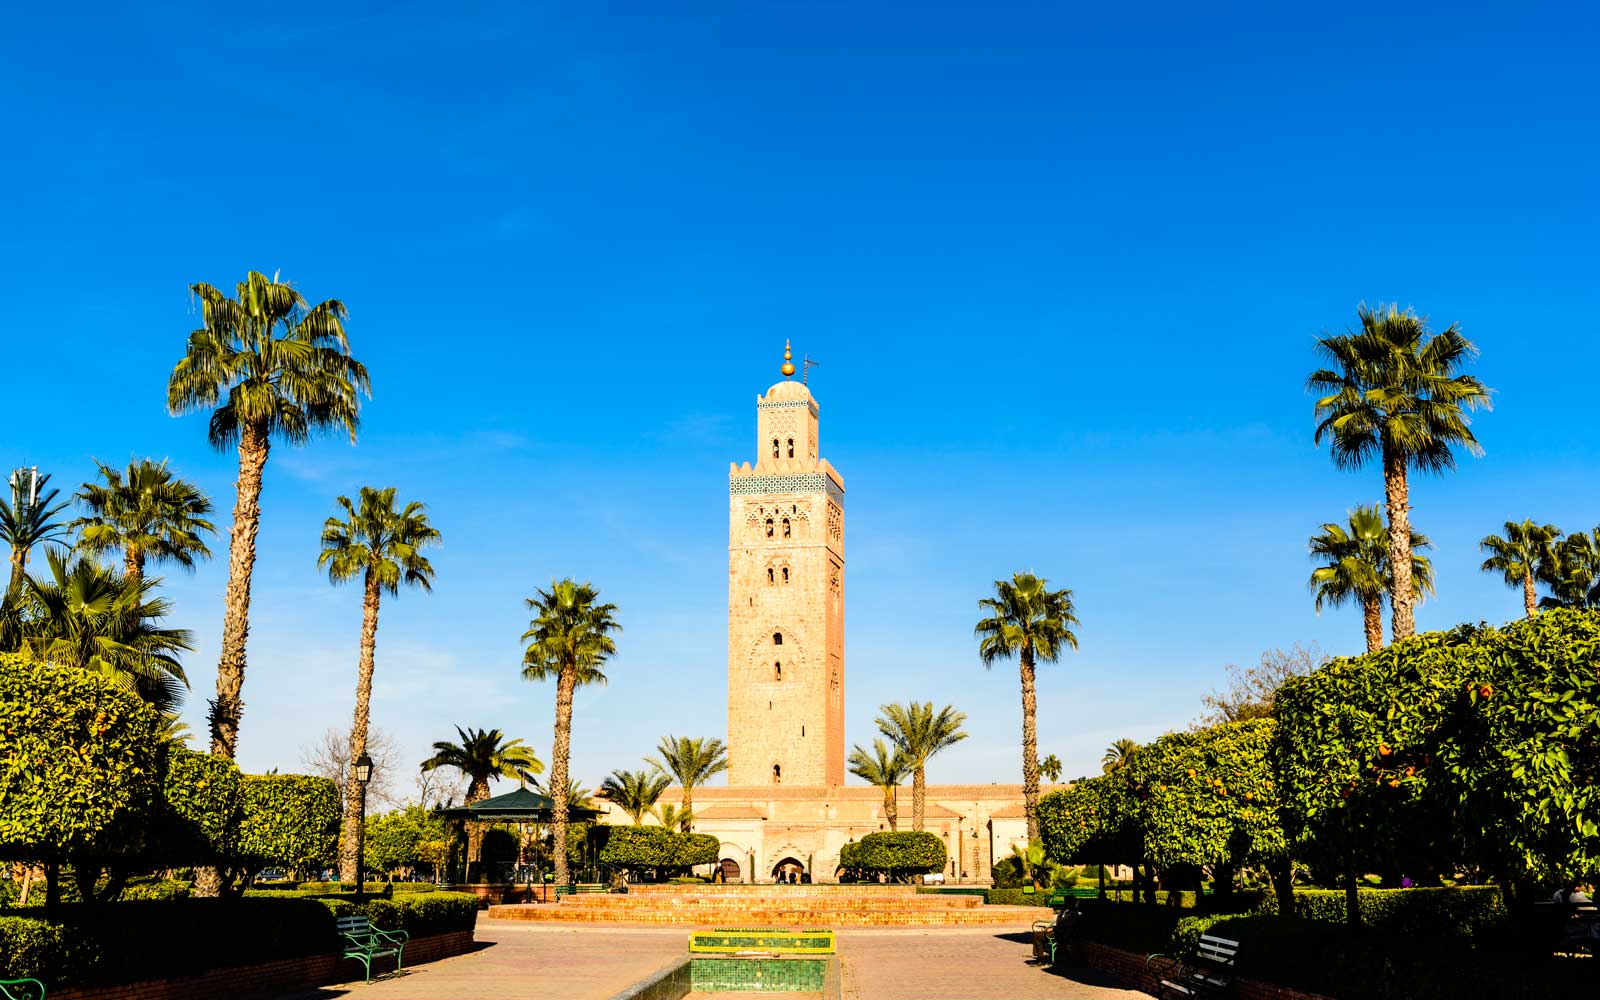 Morocco, Marrakech is know for its bright light, palm trees, and great weather